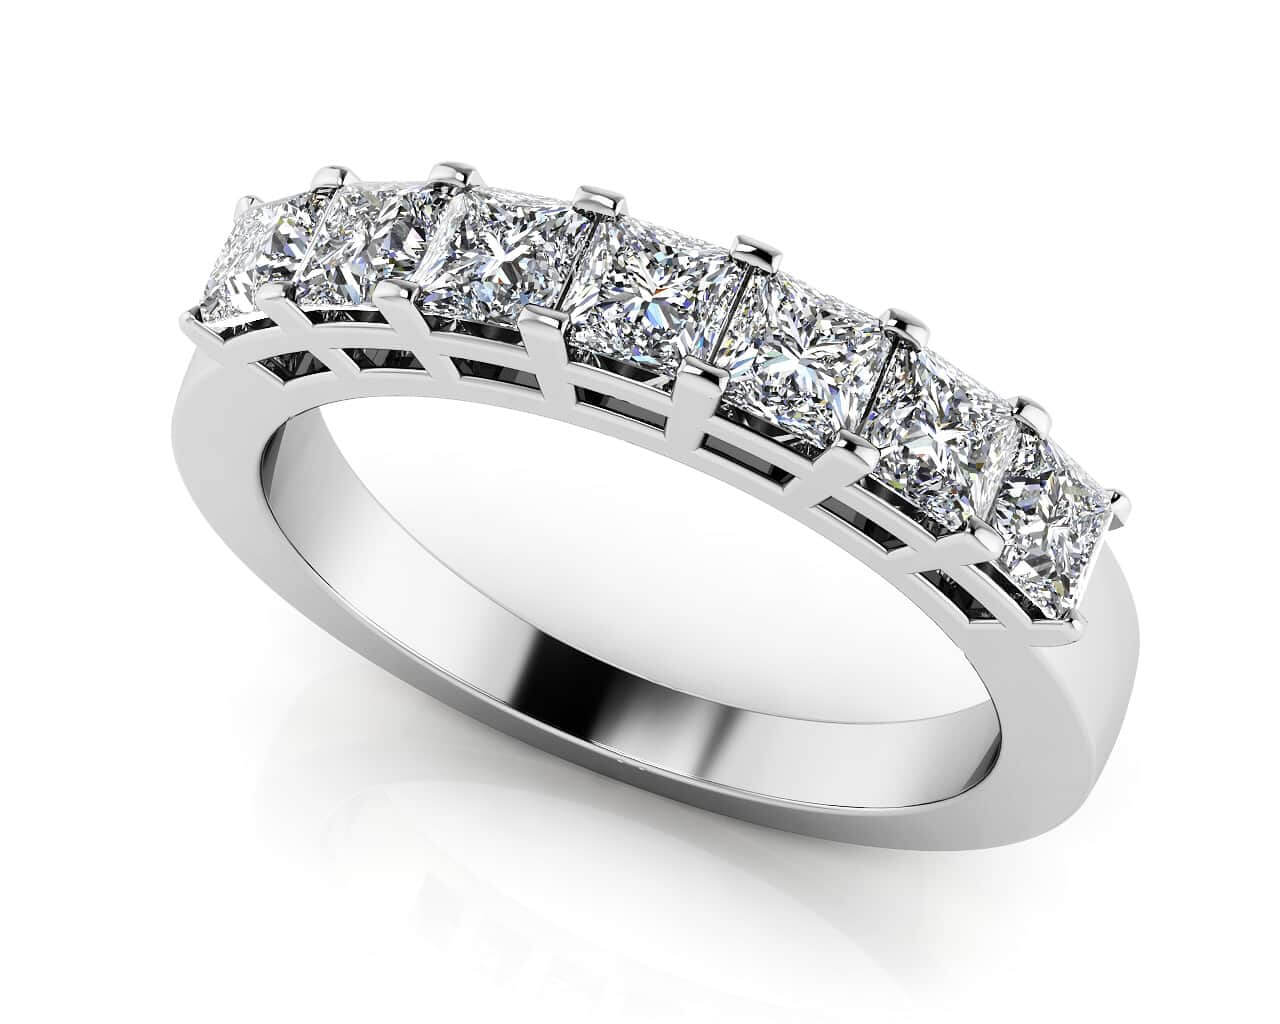 miadonna your engagement pictures own design outstanding wedding dievoon ring rings jewellery decors